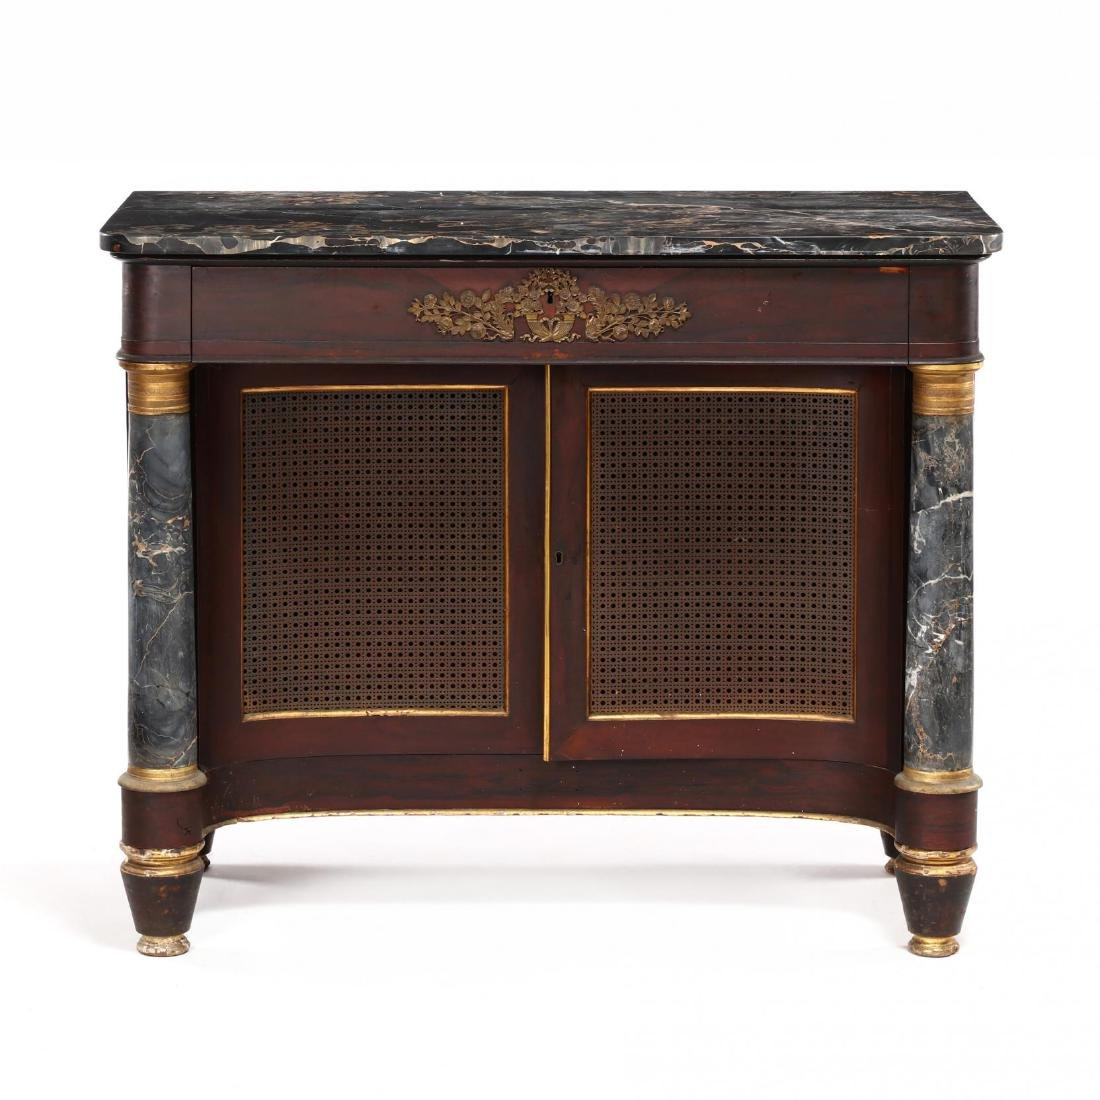 American Classical Marble Top and Gilt Pier Table